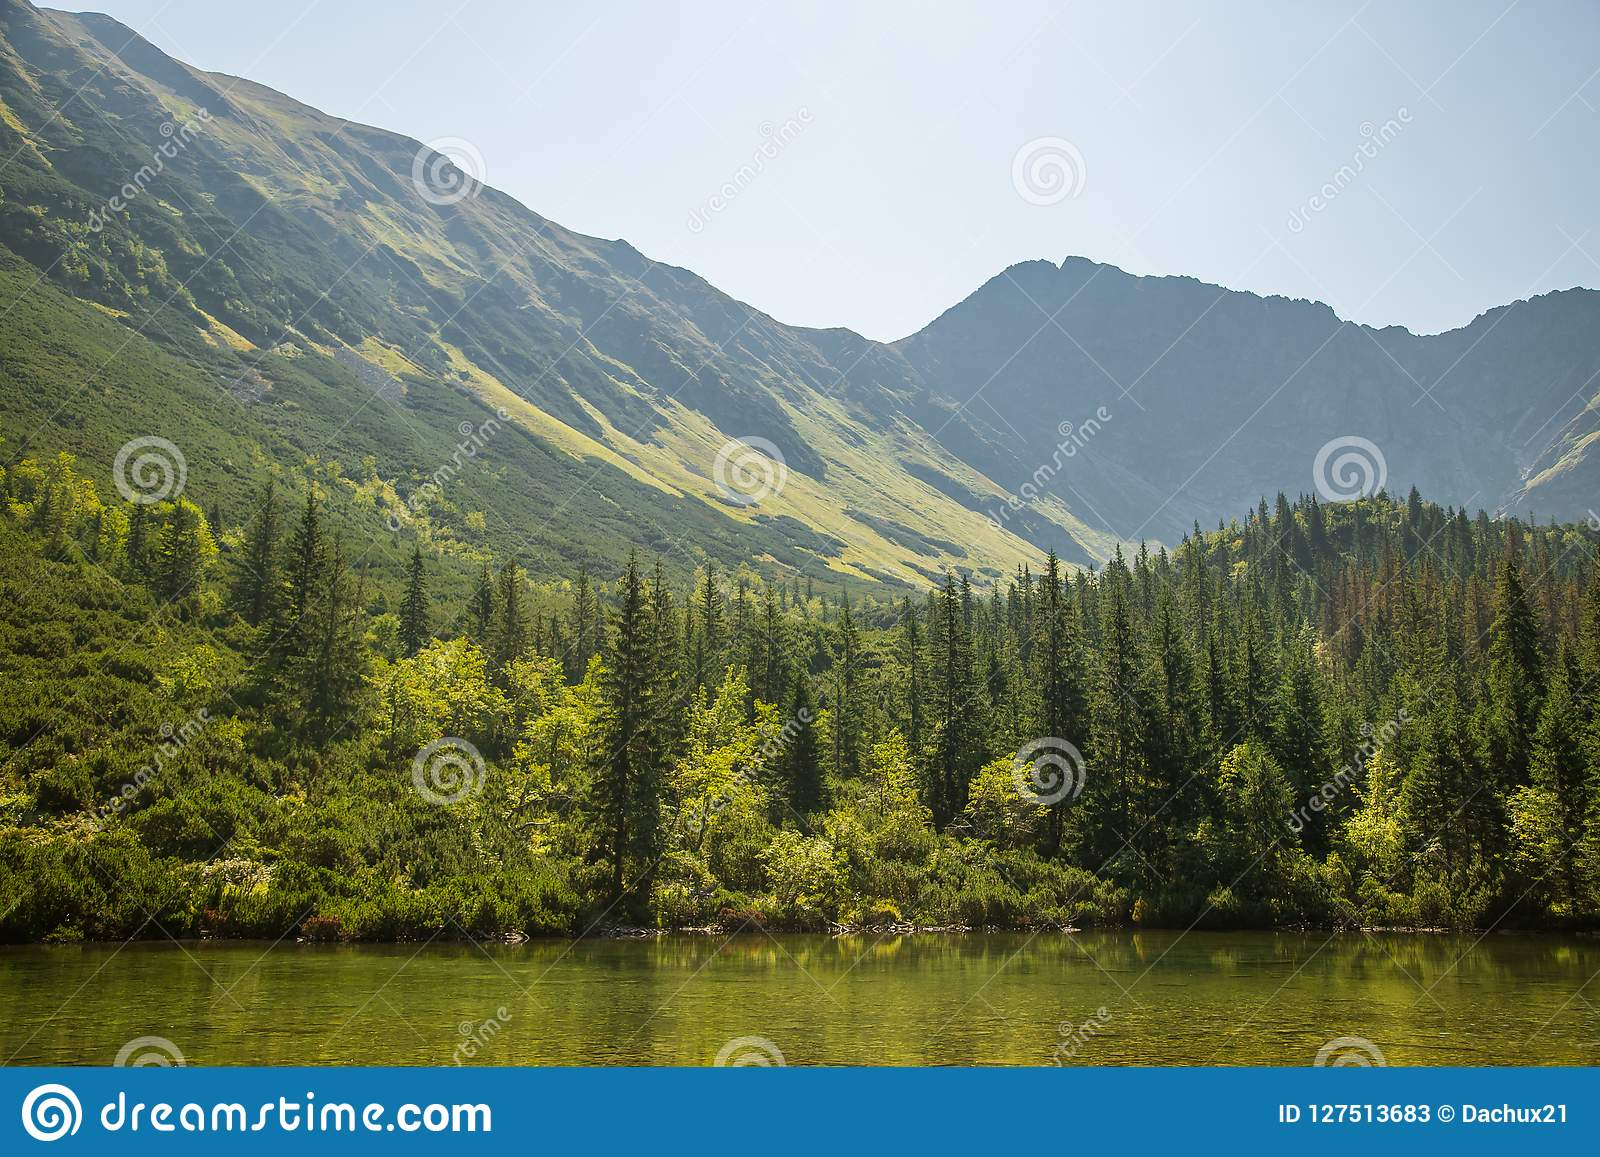 A beautiful, clean lake in the mountain valley in calm, sunny day. Mountain landscape with water in summer.